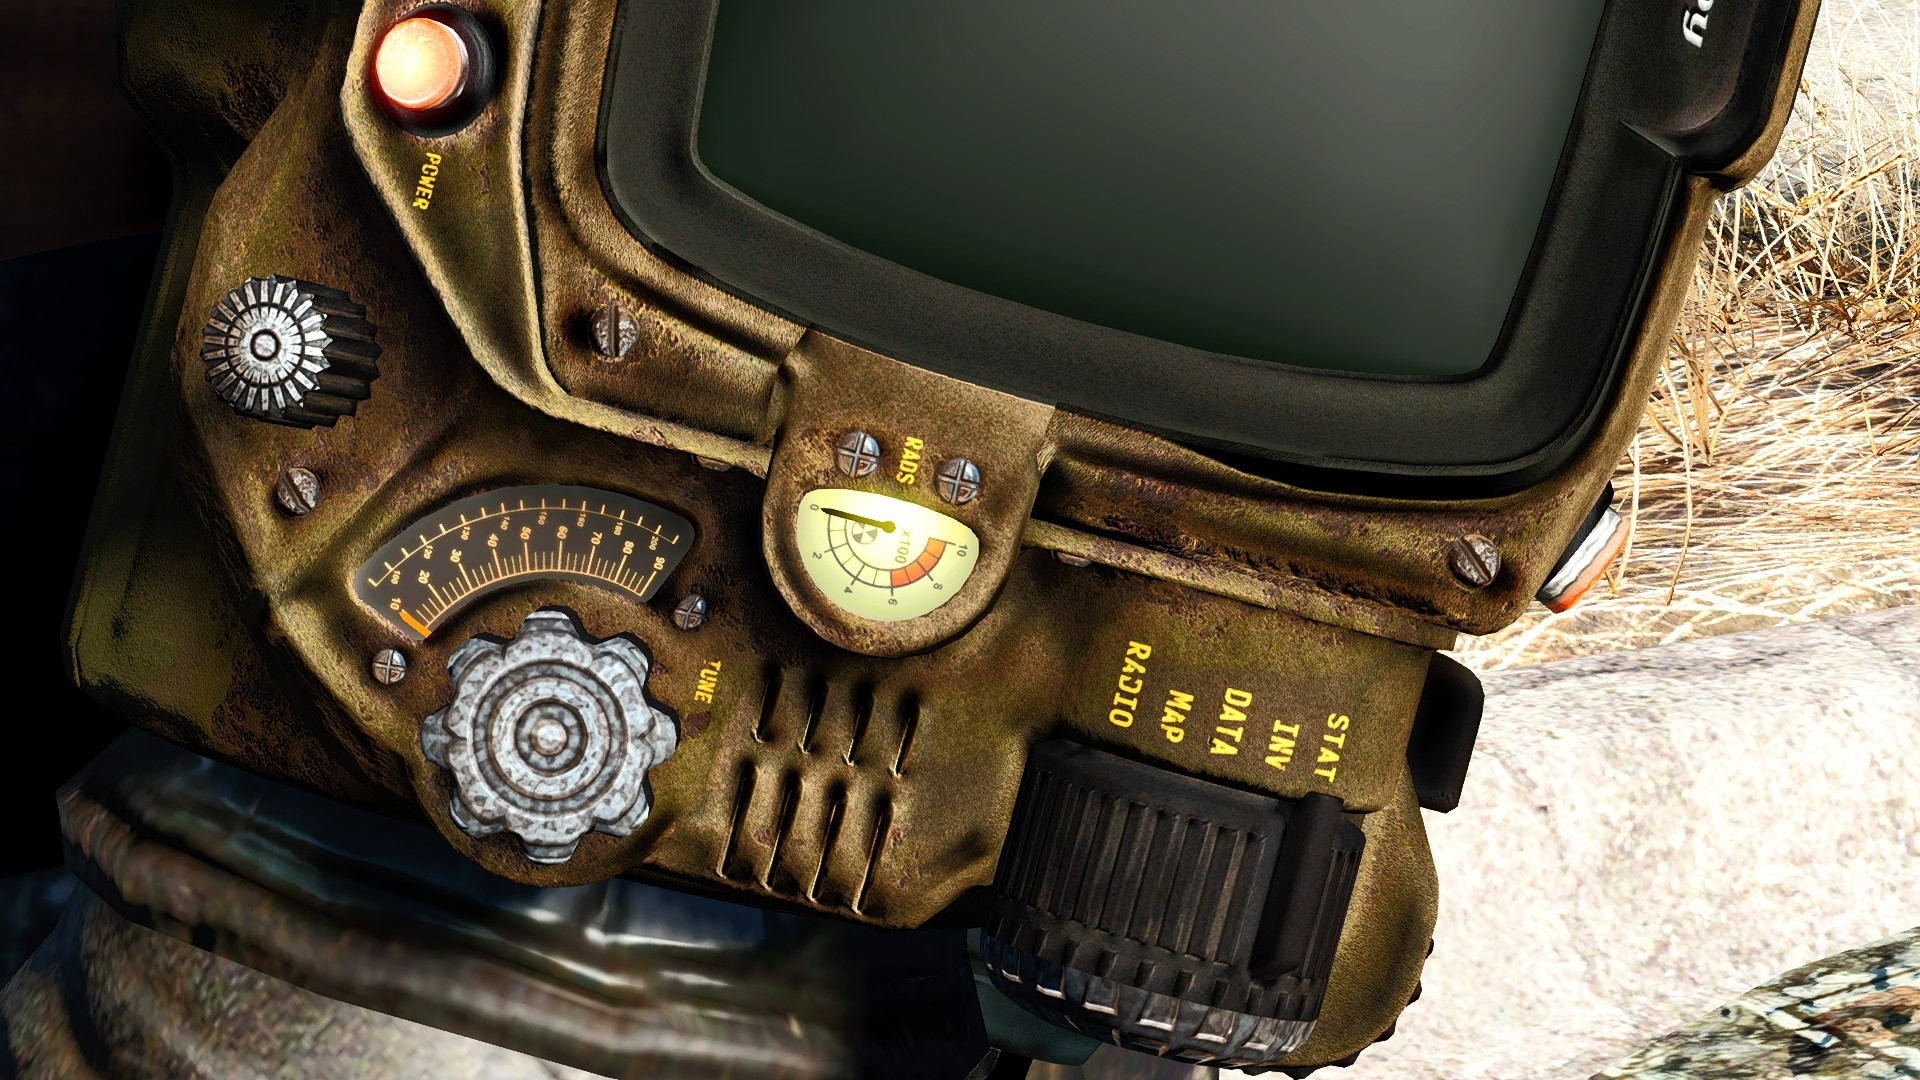 Fallout Texture Overhaul PipBoy (Pip-Boy) UHD 4K at Fallout 4 Nexus – Mods  and community